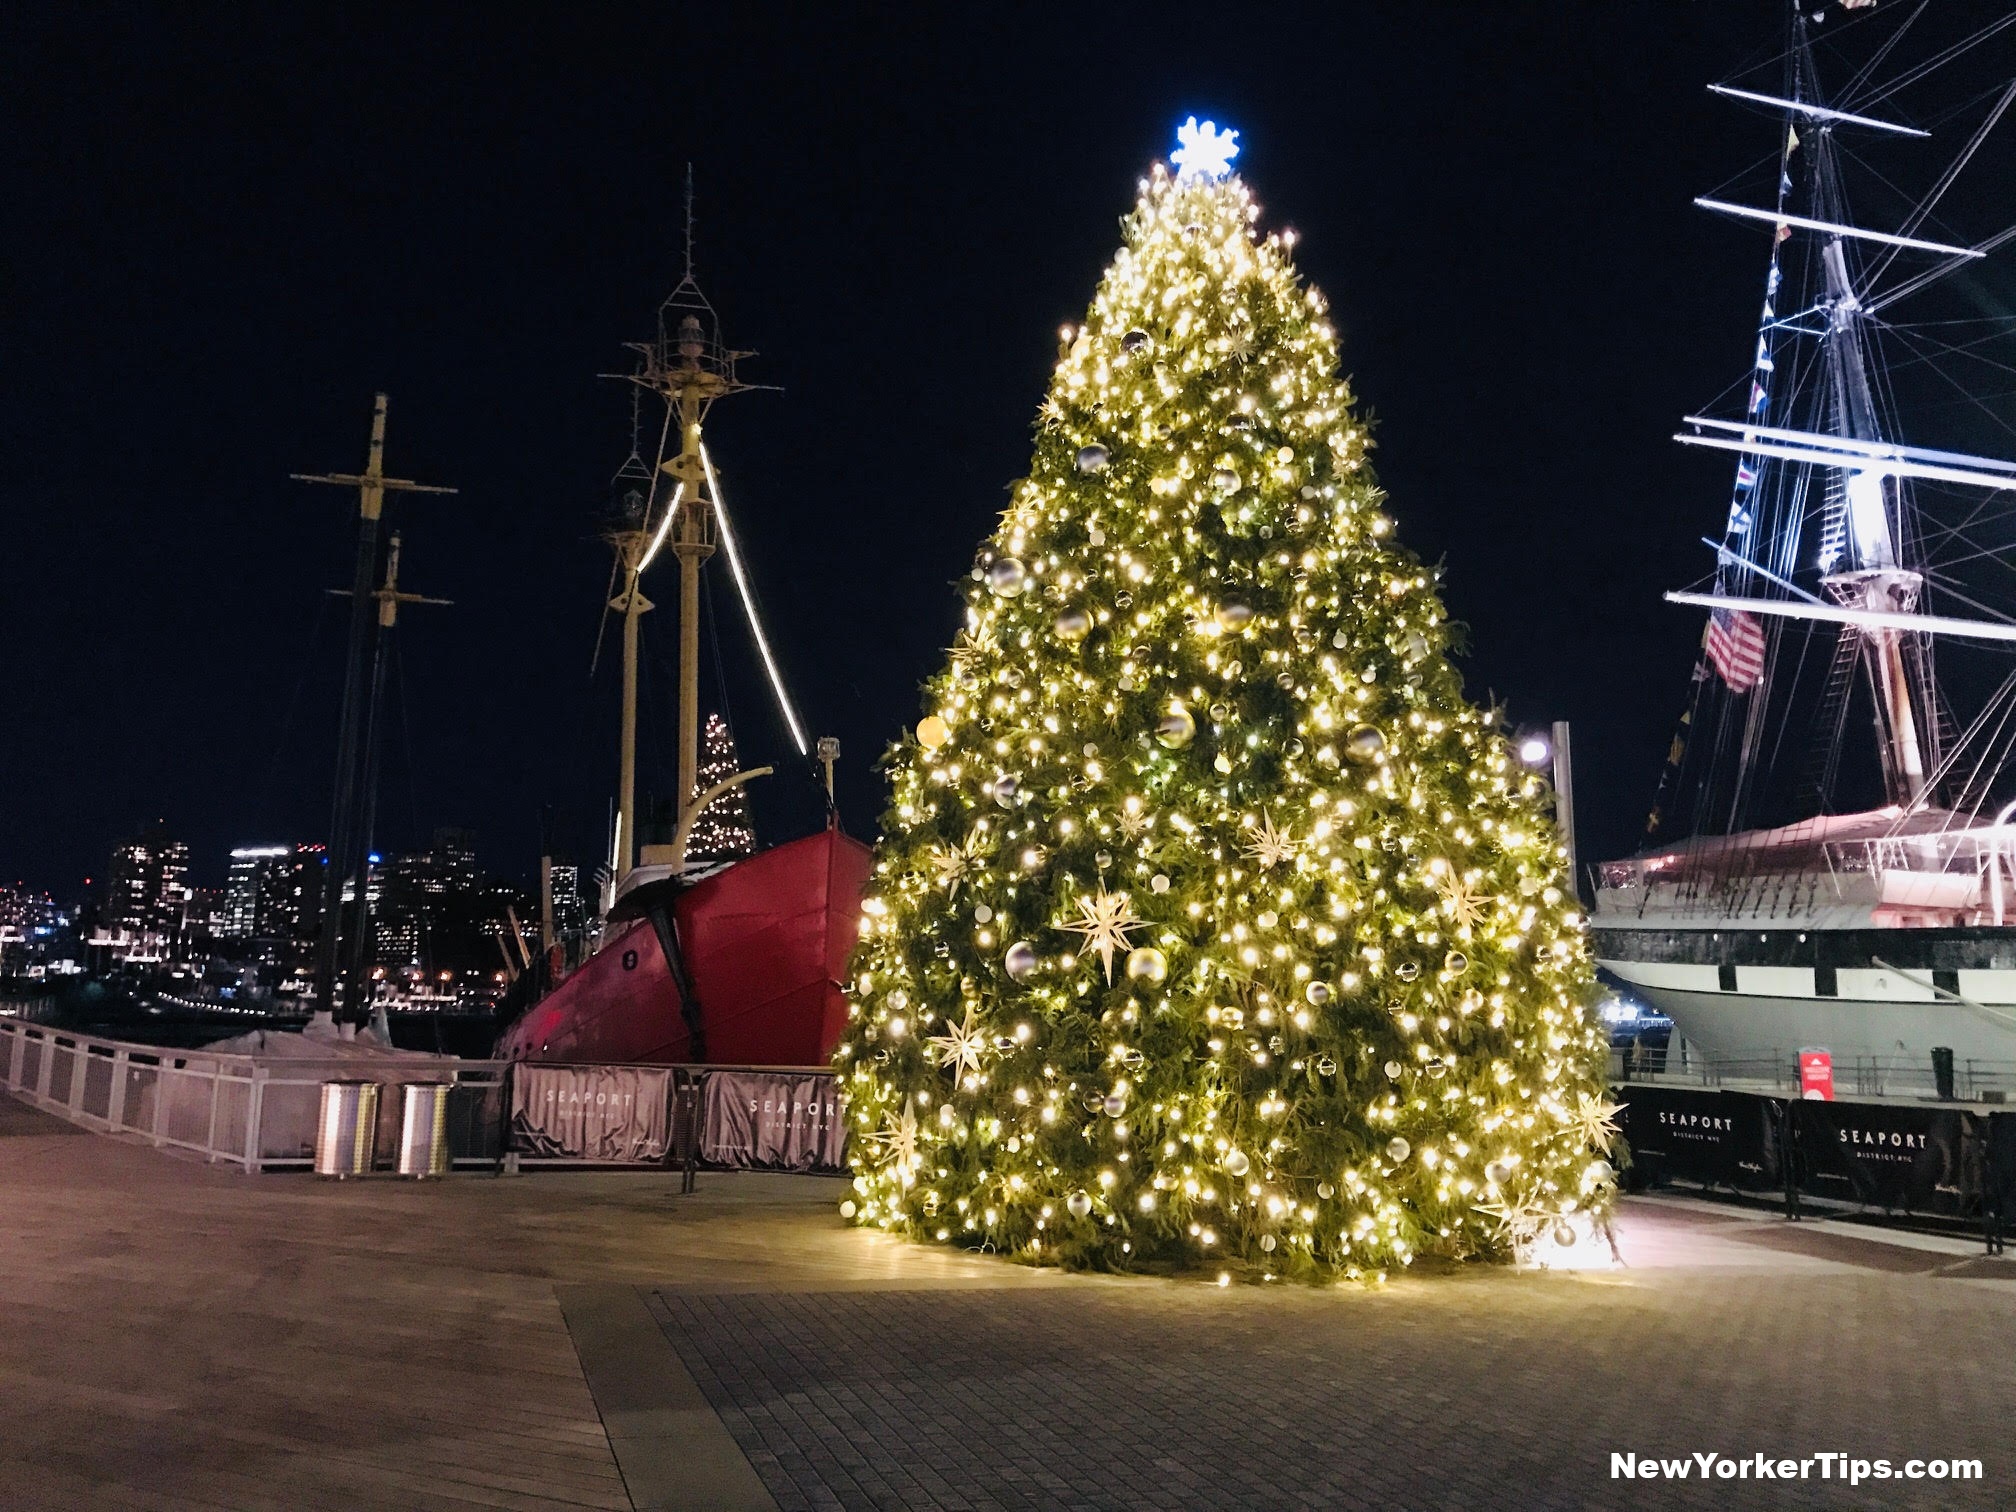 South Street Seaport Christmas Tree In New York New Yorker Tips